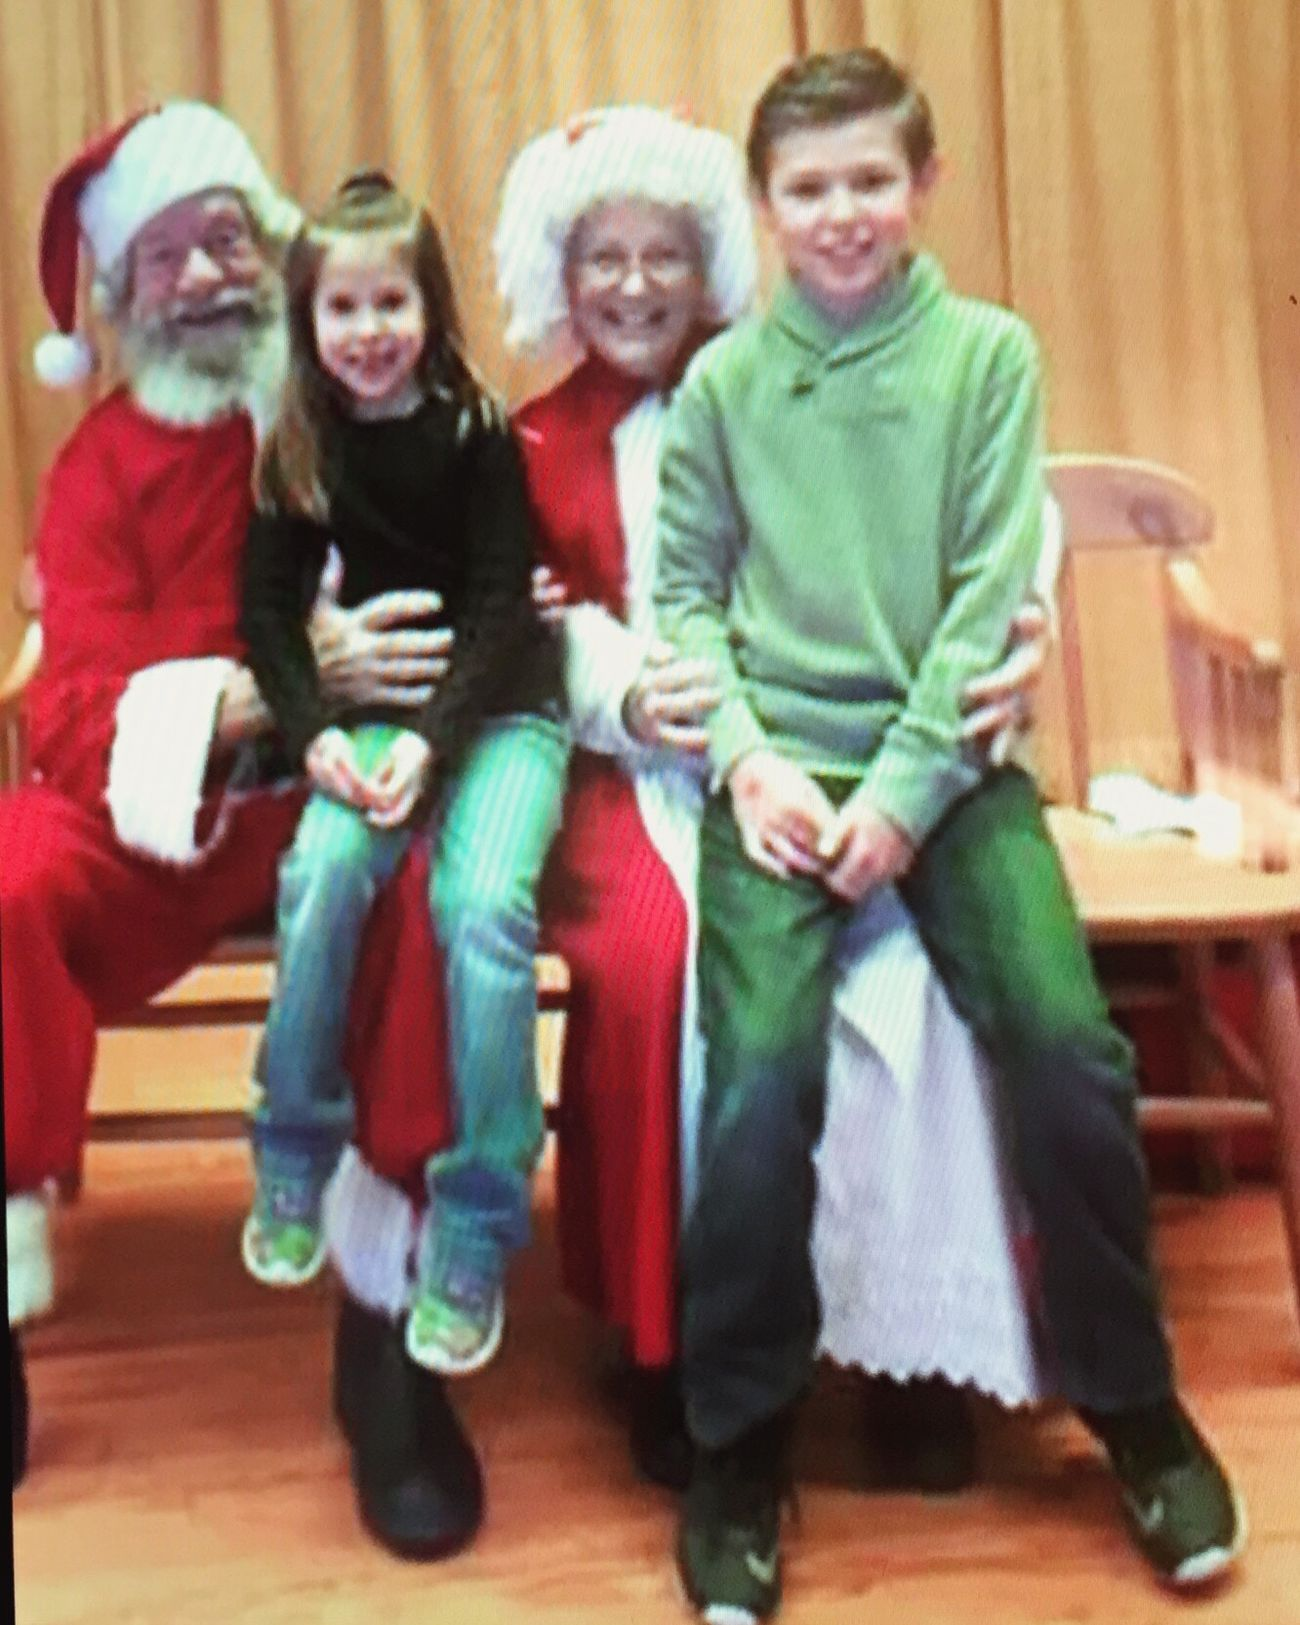 Mr. & Mrs. Claus posing with my two favorite kids ❤️ Picture Kidsphotography Kids Siblings Family❤ Family Love  Niece 💕 Nephewlove Nephew ♡ NIECE LOVE Santa Claus Christmastime Holidays Smiling People Enjoying Life Simple Things In Life Happiness Indoors  Snapshot Joy Love Them